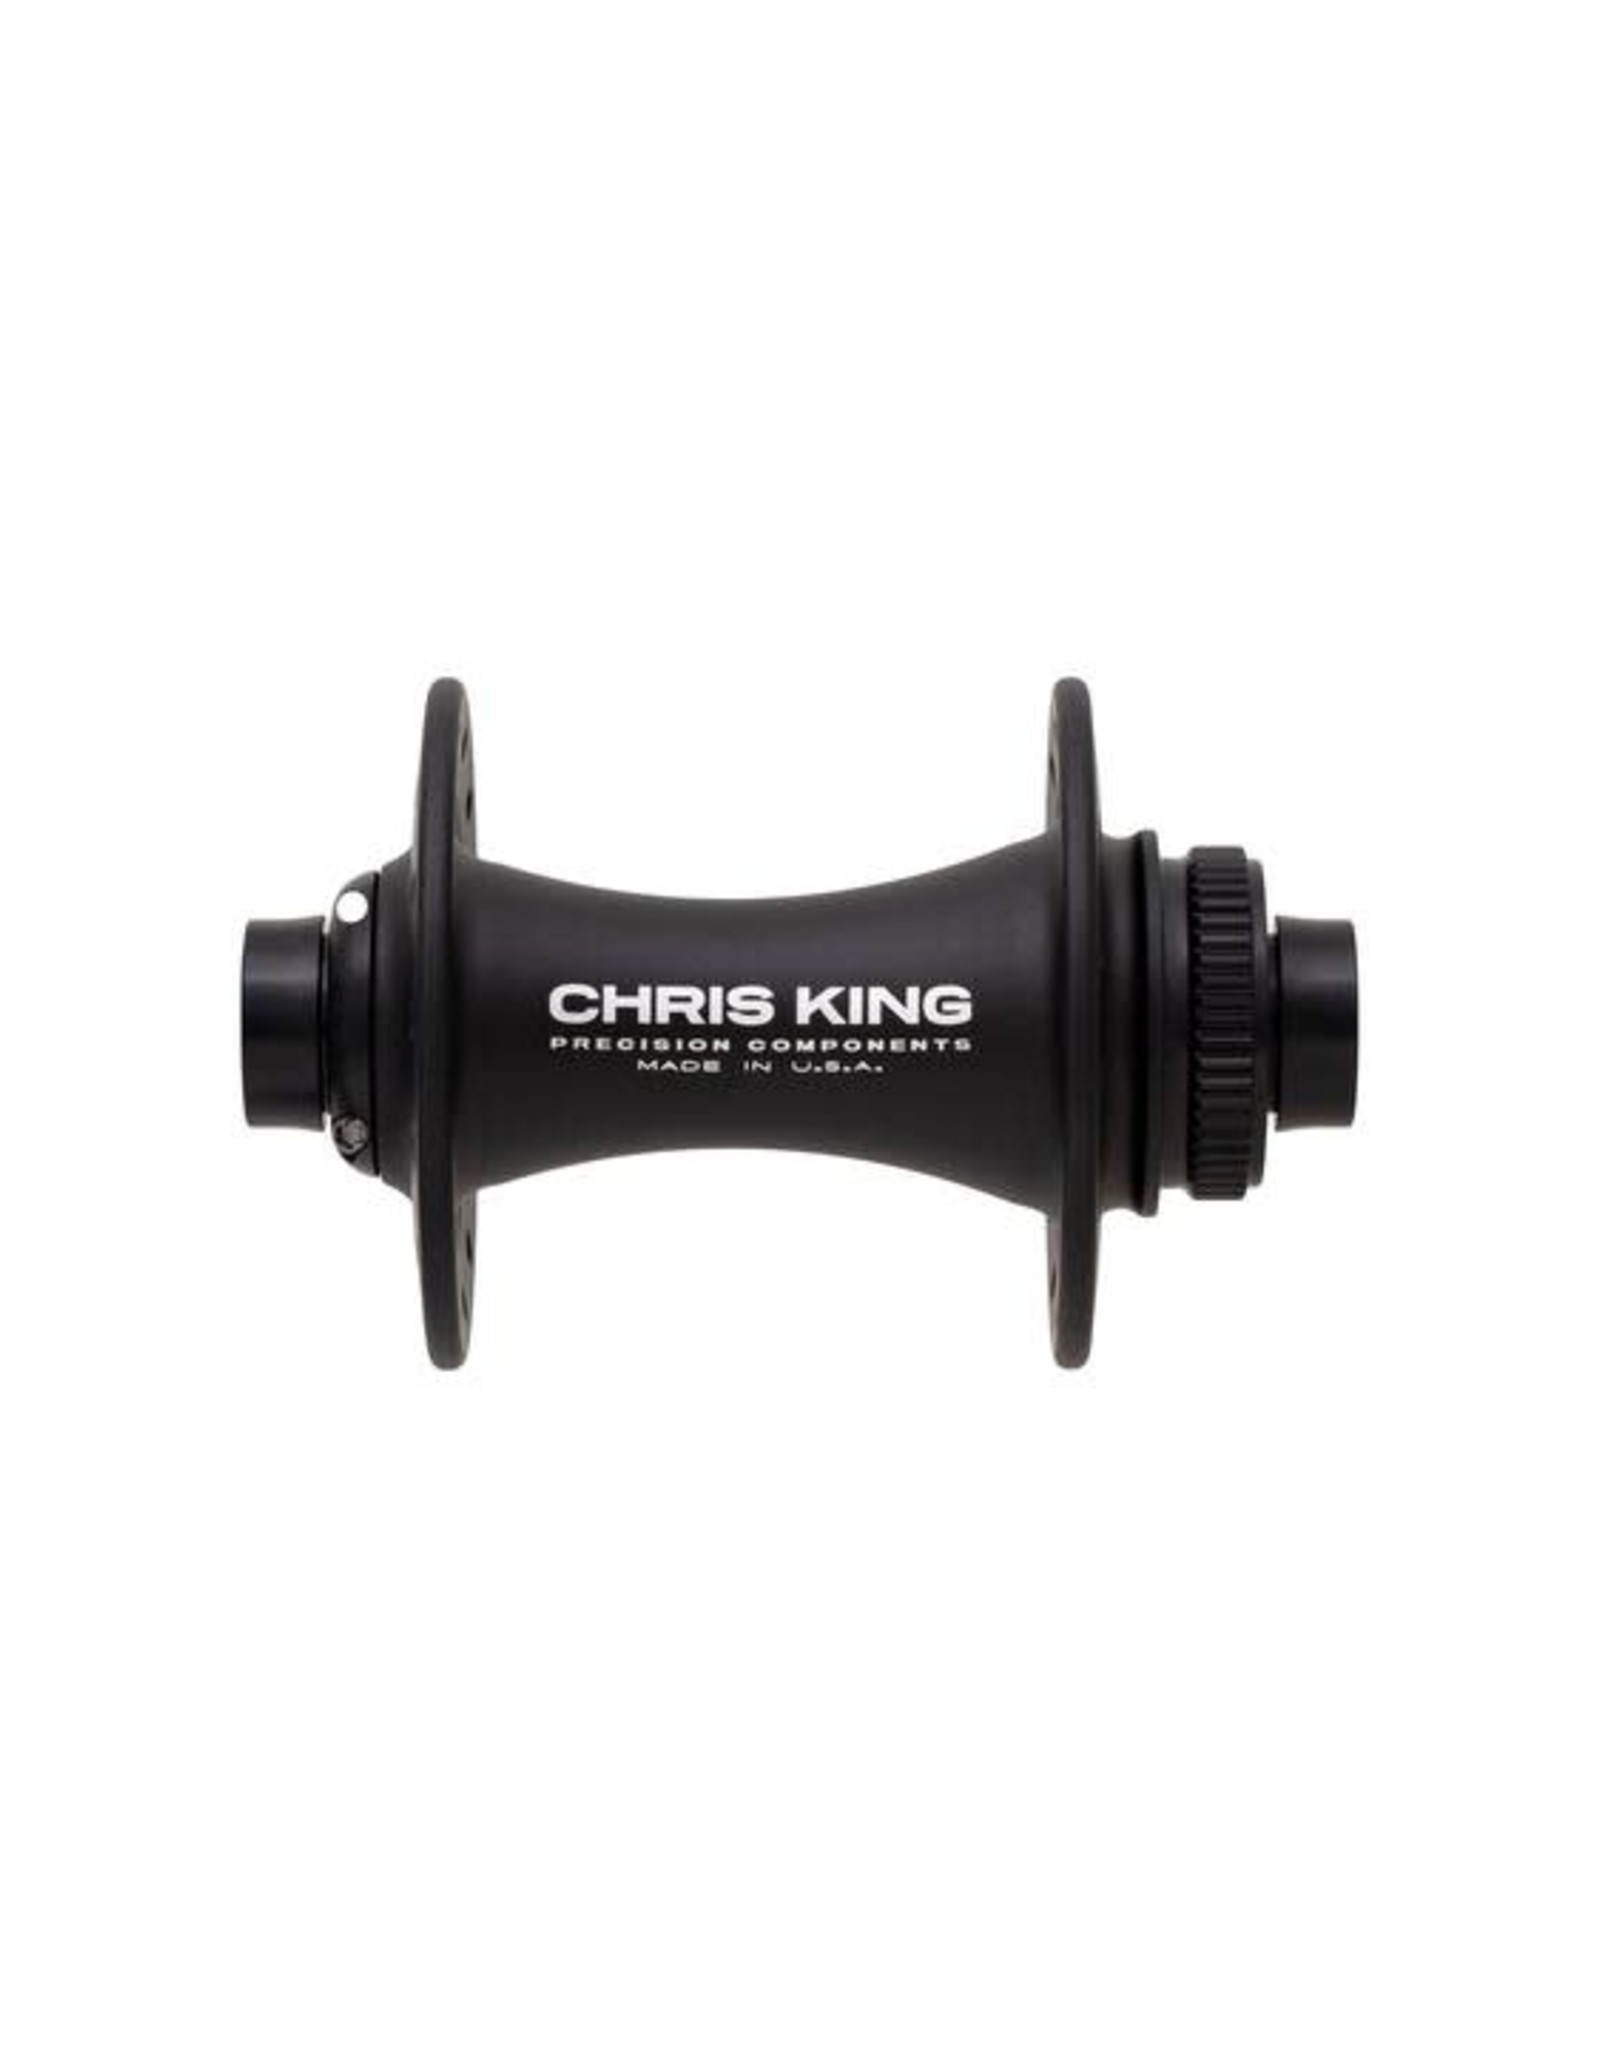 Chris King Components Chris King Front Boost, 15x110, Centerlock